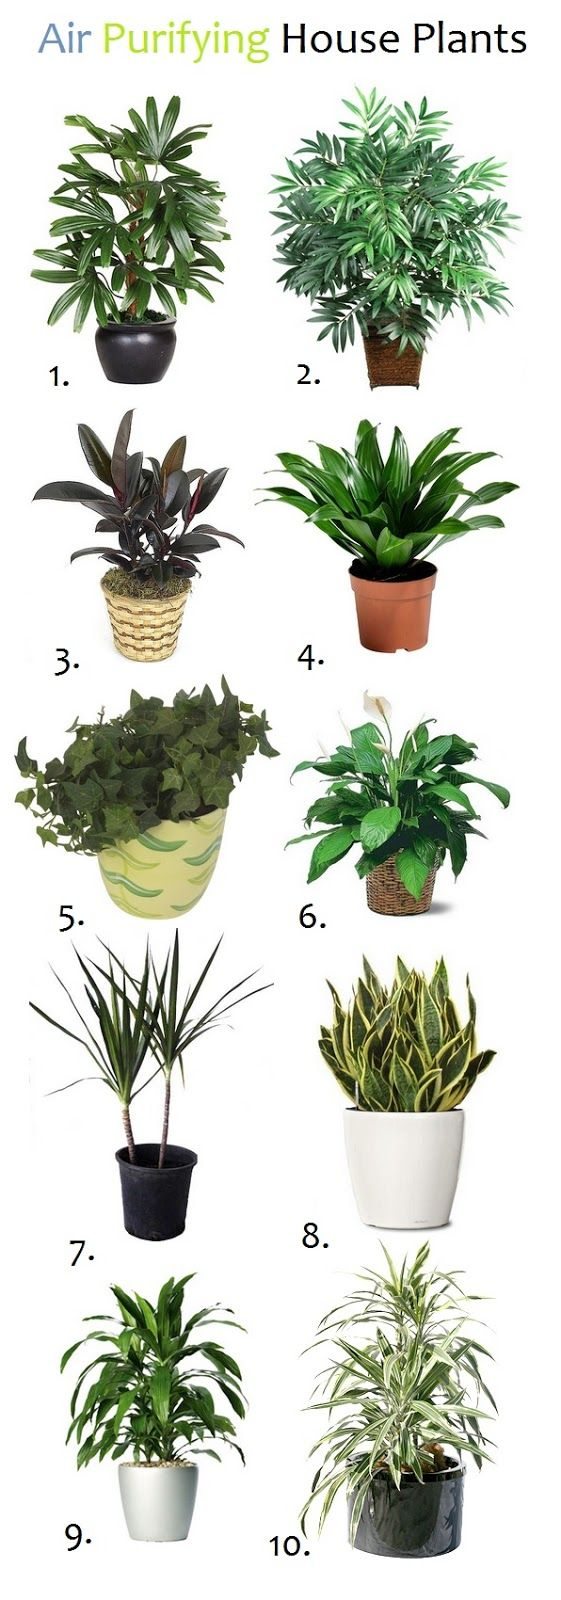 10 Air Purifying House Plants //: